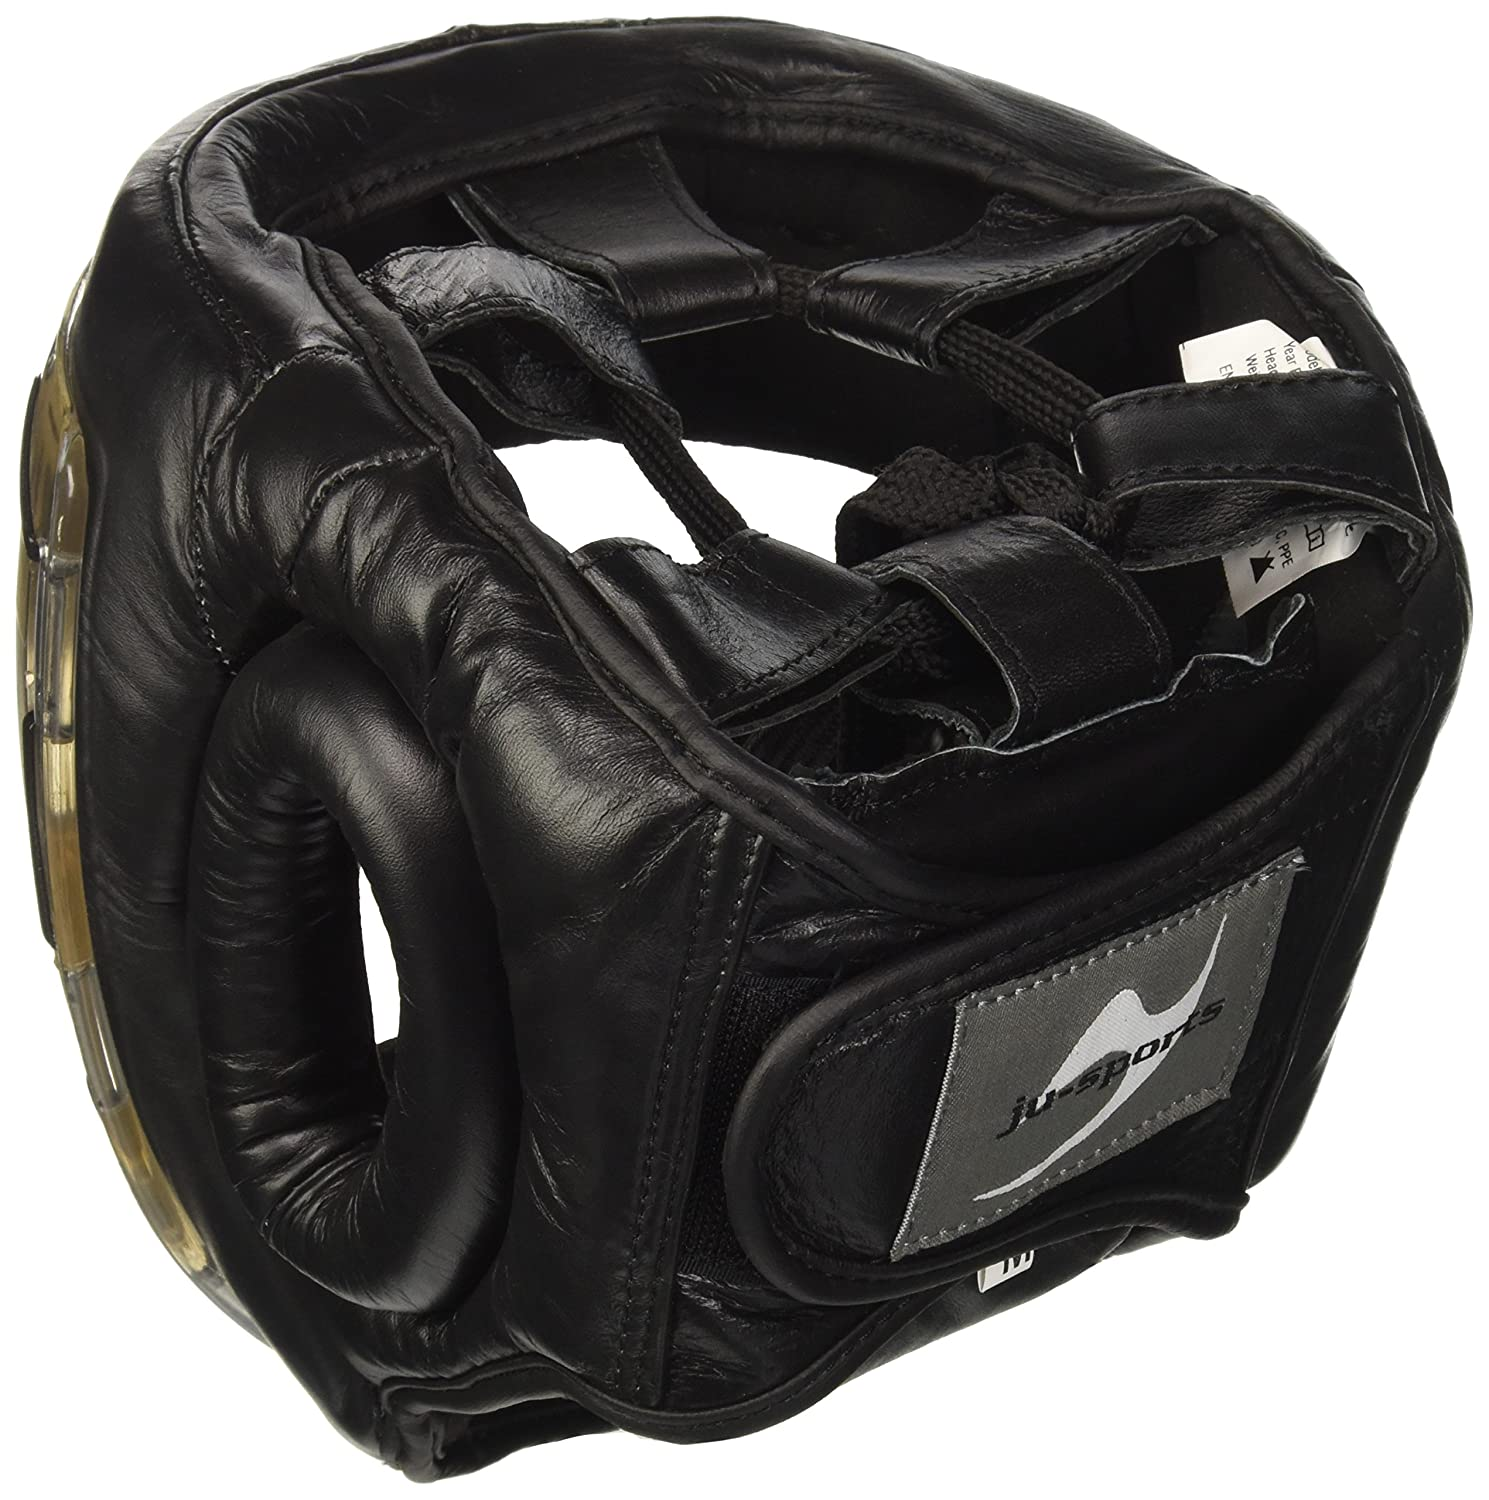 Casco de Artes Marciales Color Negro Ju-Sports Kopfschutz Shield Talla L